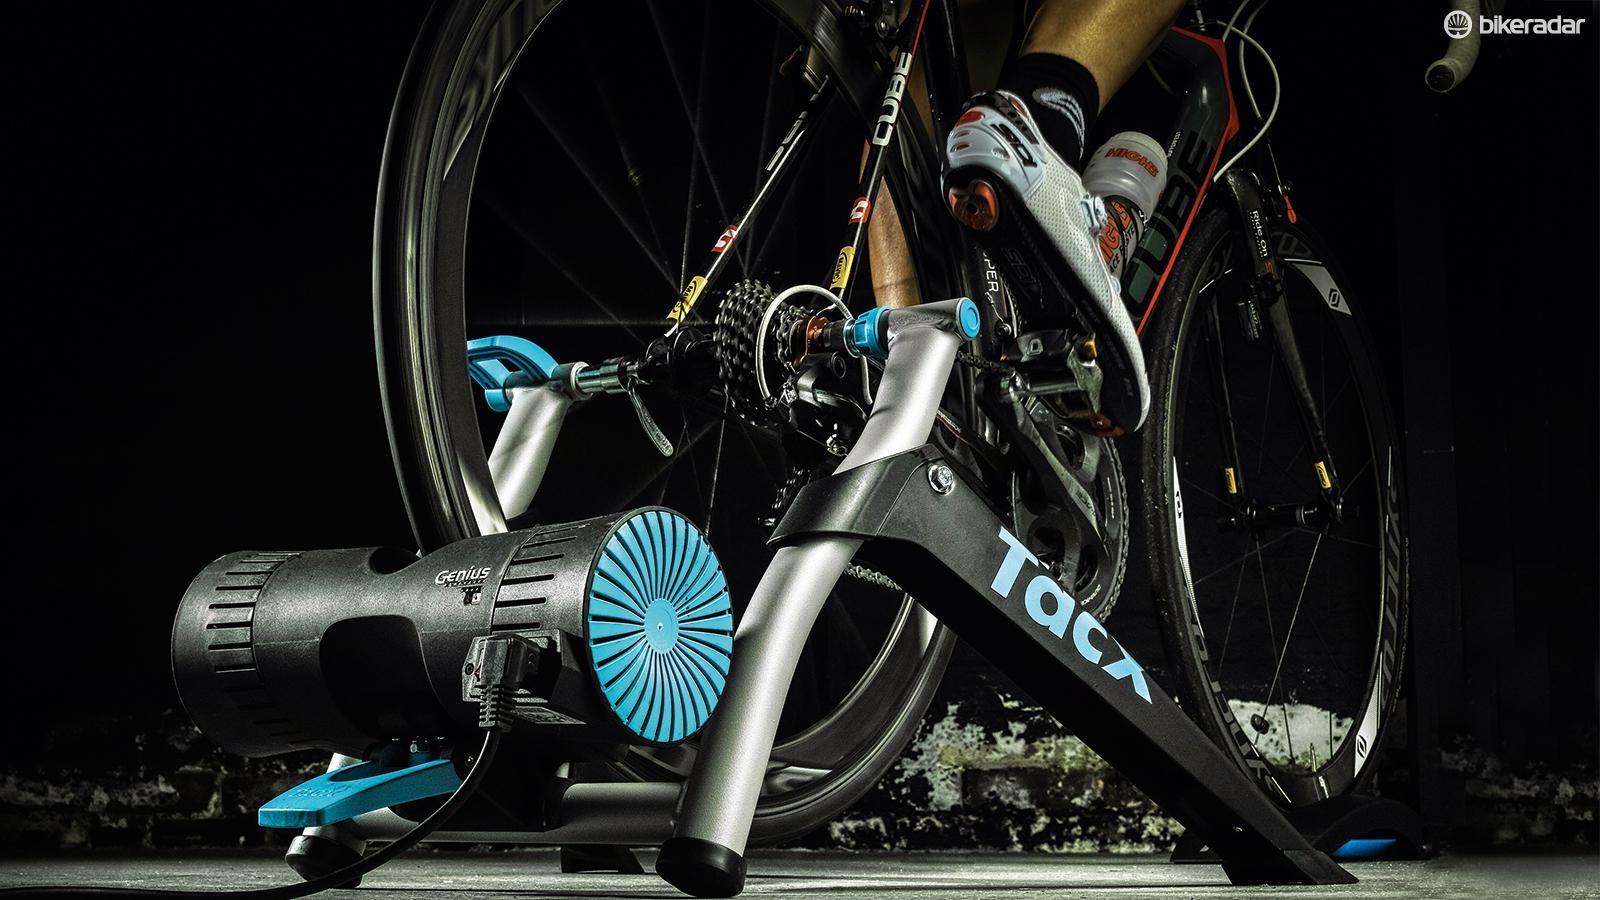 You'll need a turbo trainer for this training plan to work properly